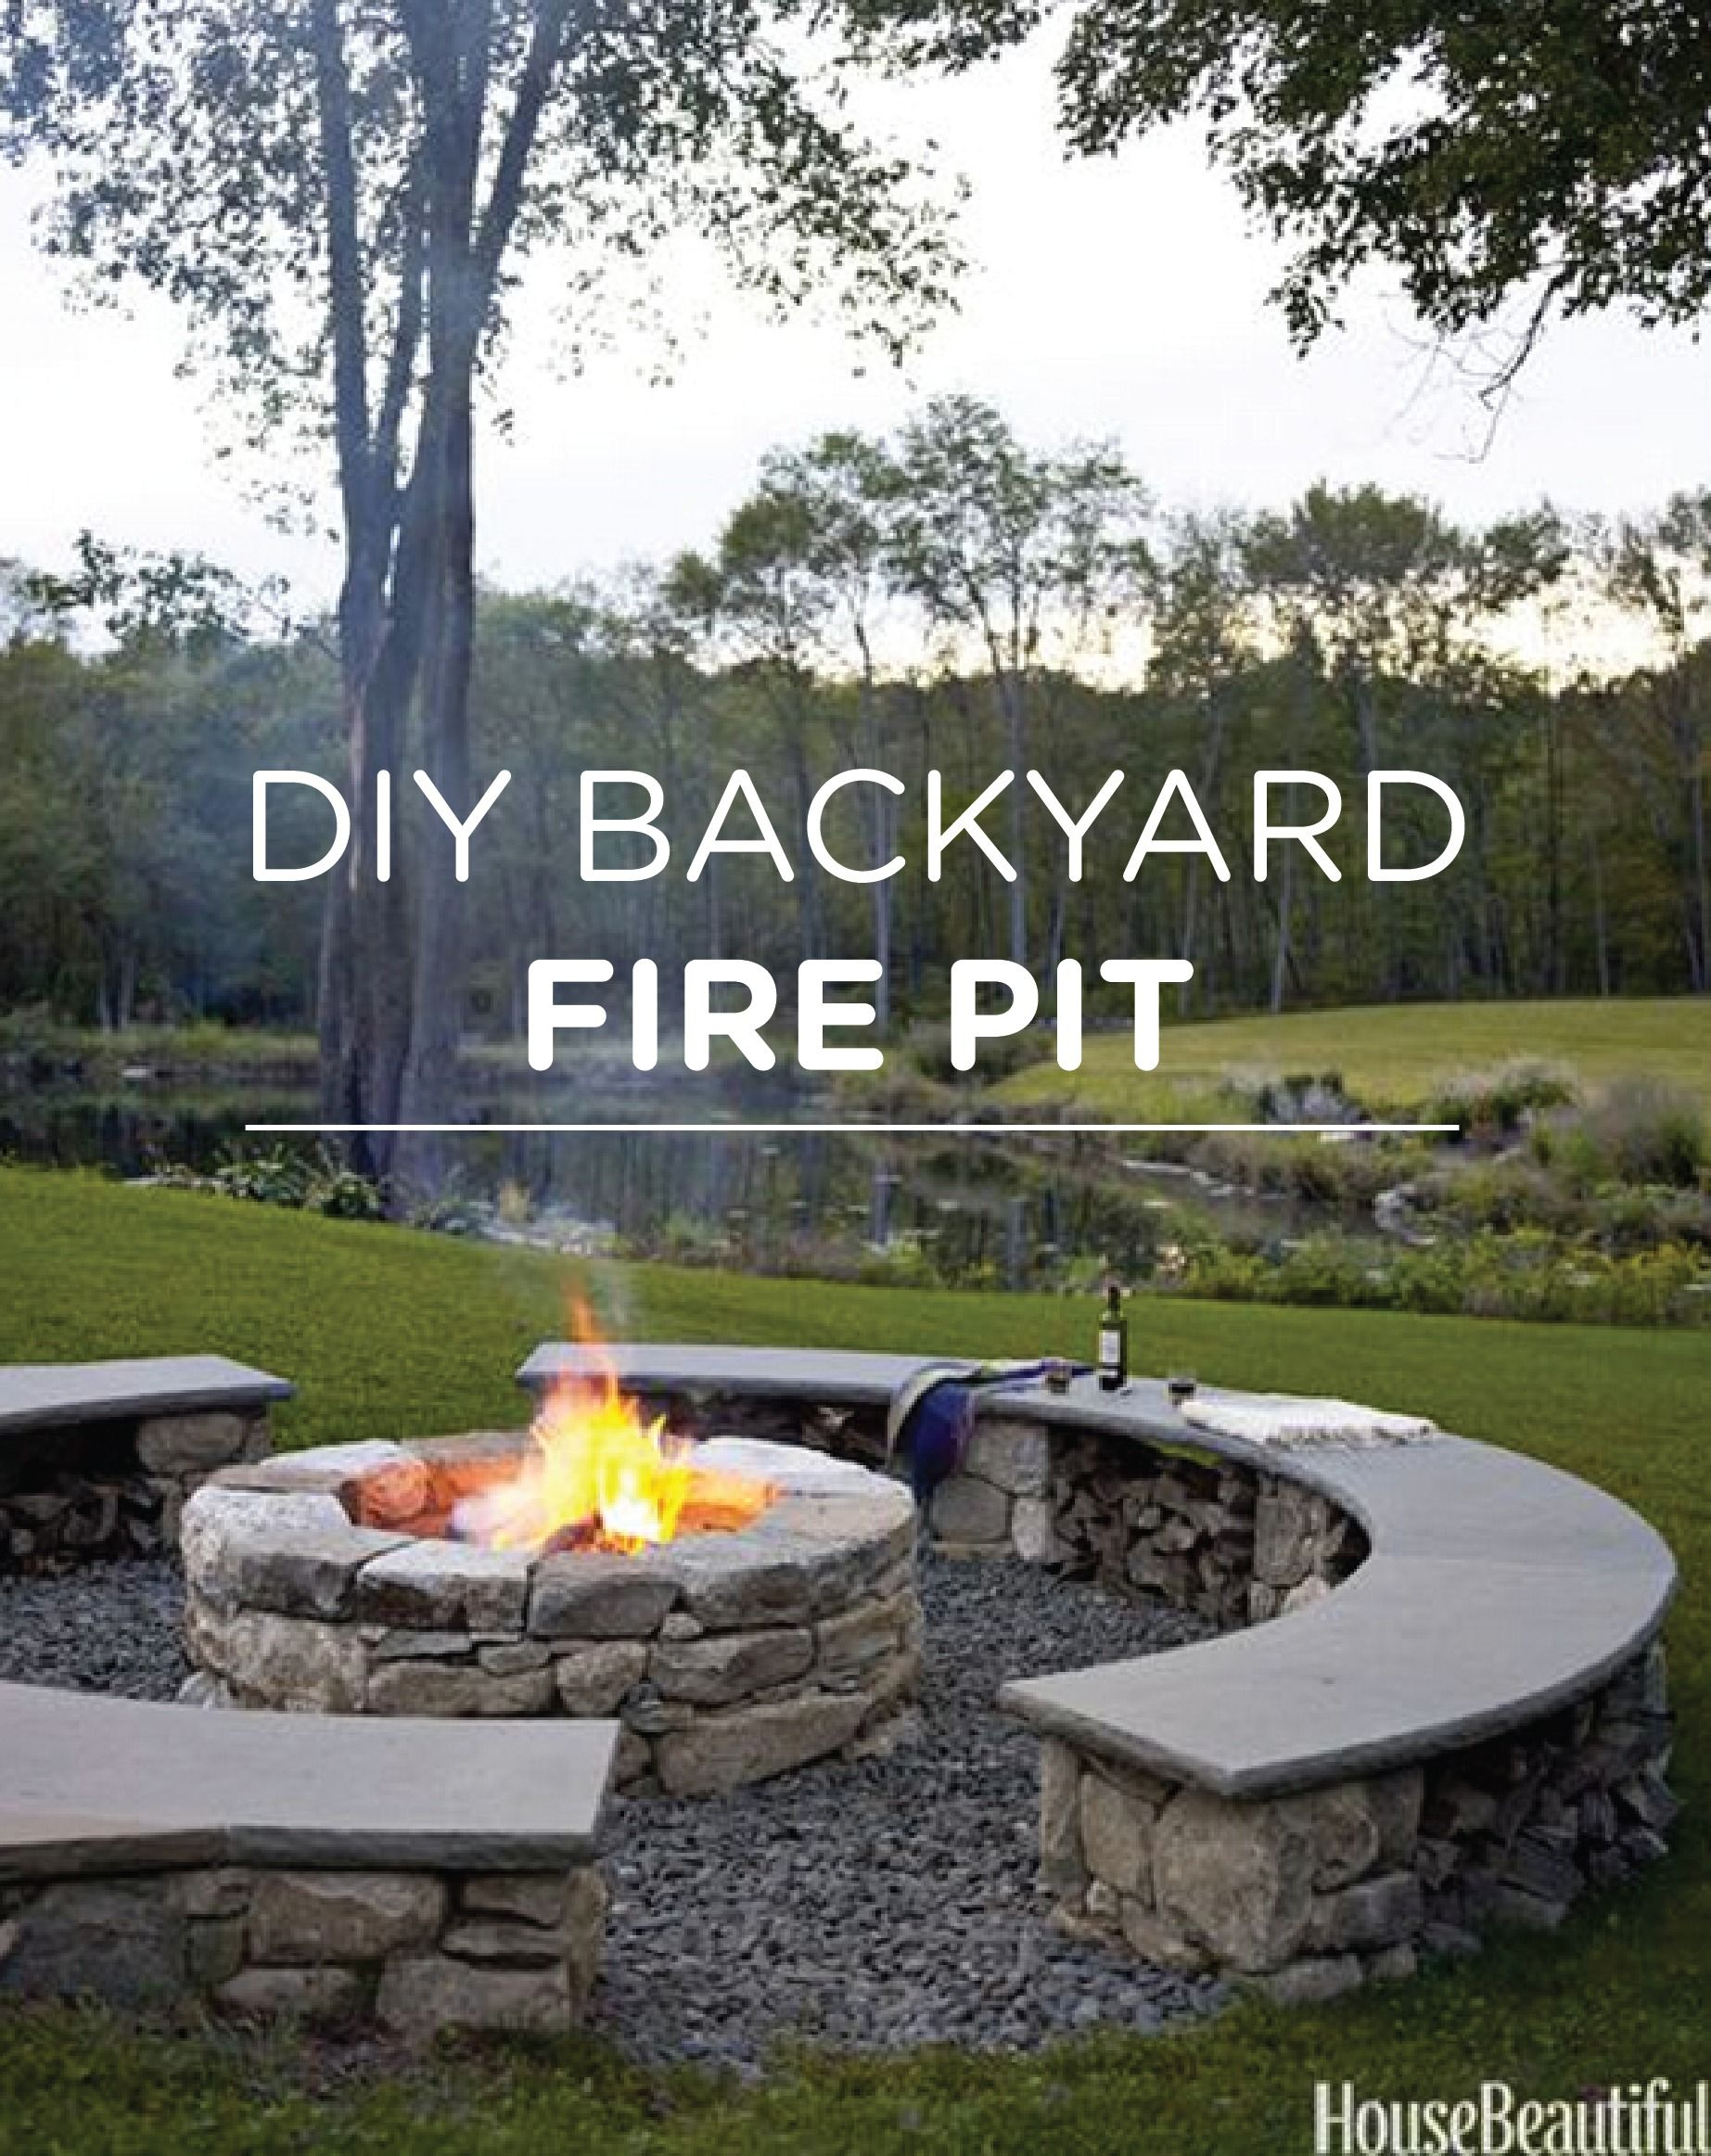 Toast Marshmallows This Spring With Your Own Diy Backyard Fire Pit inside Diy Backyard Fire Pit Ideas